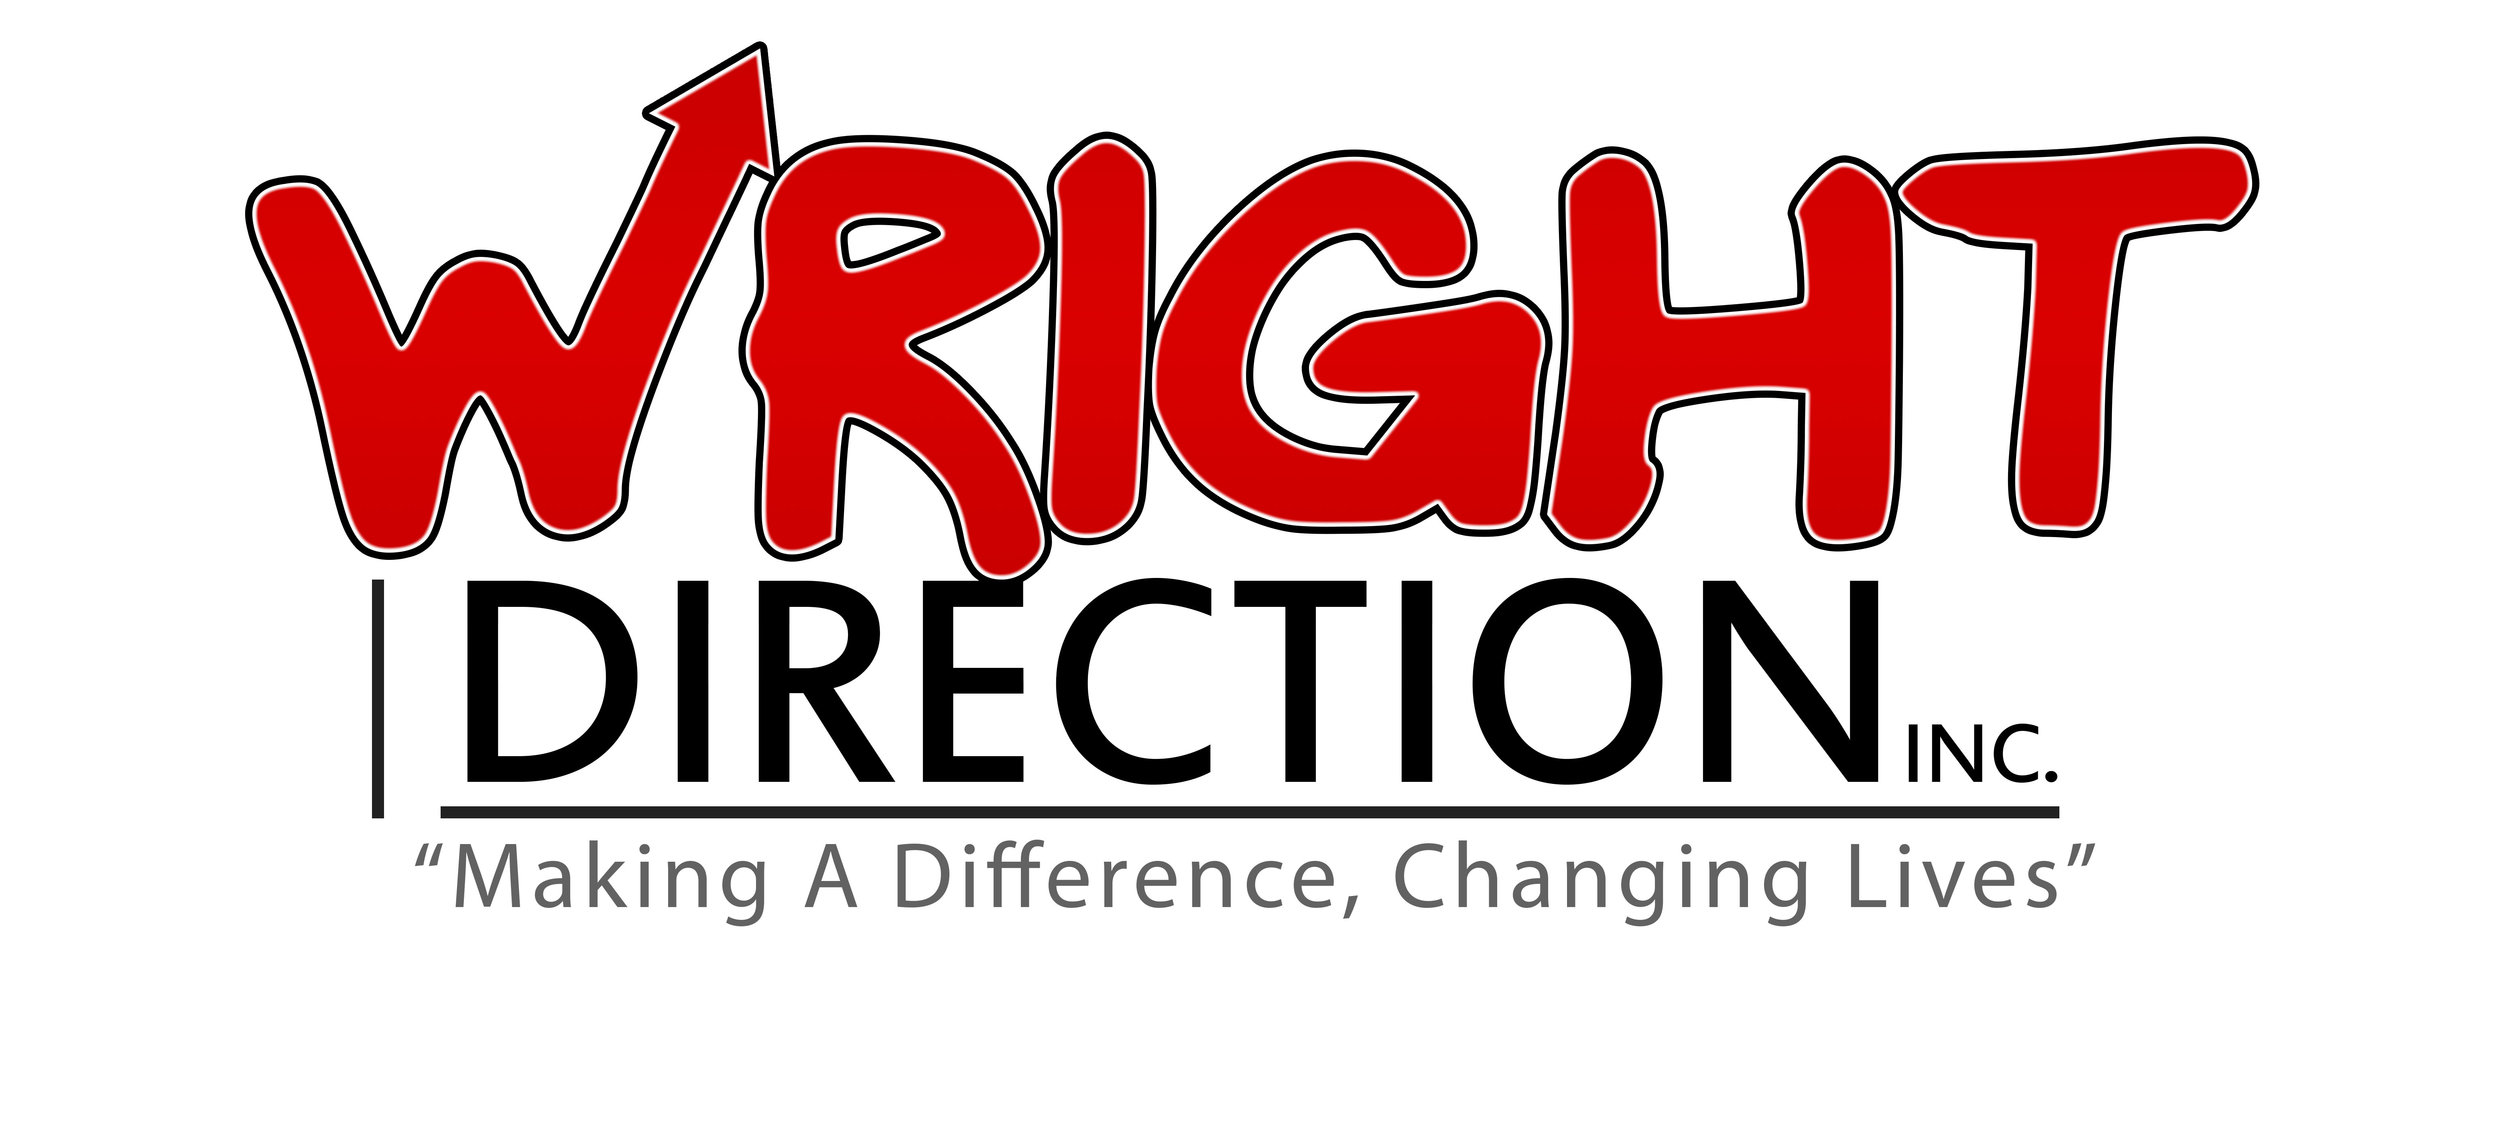 Logo - Wright Direction Inc Concept 3 with Arrow slant up ne slogan.jpg